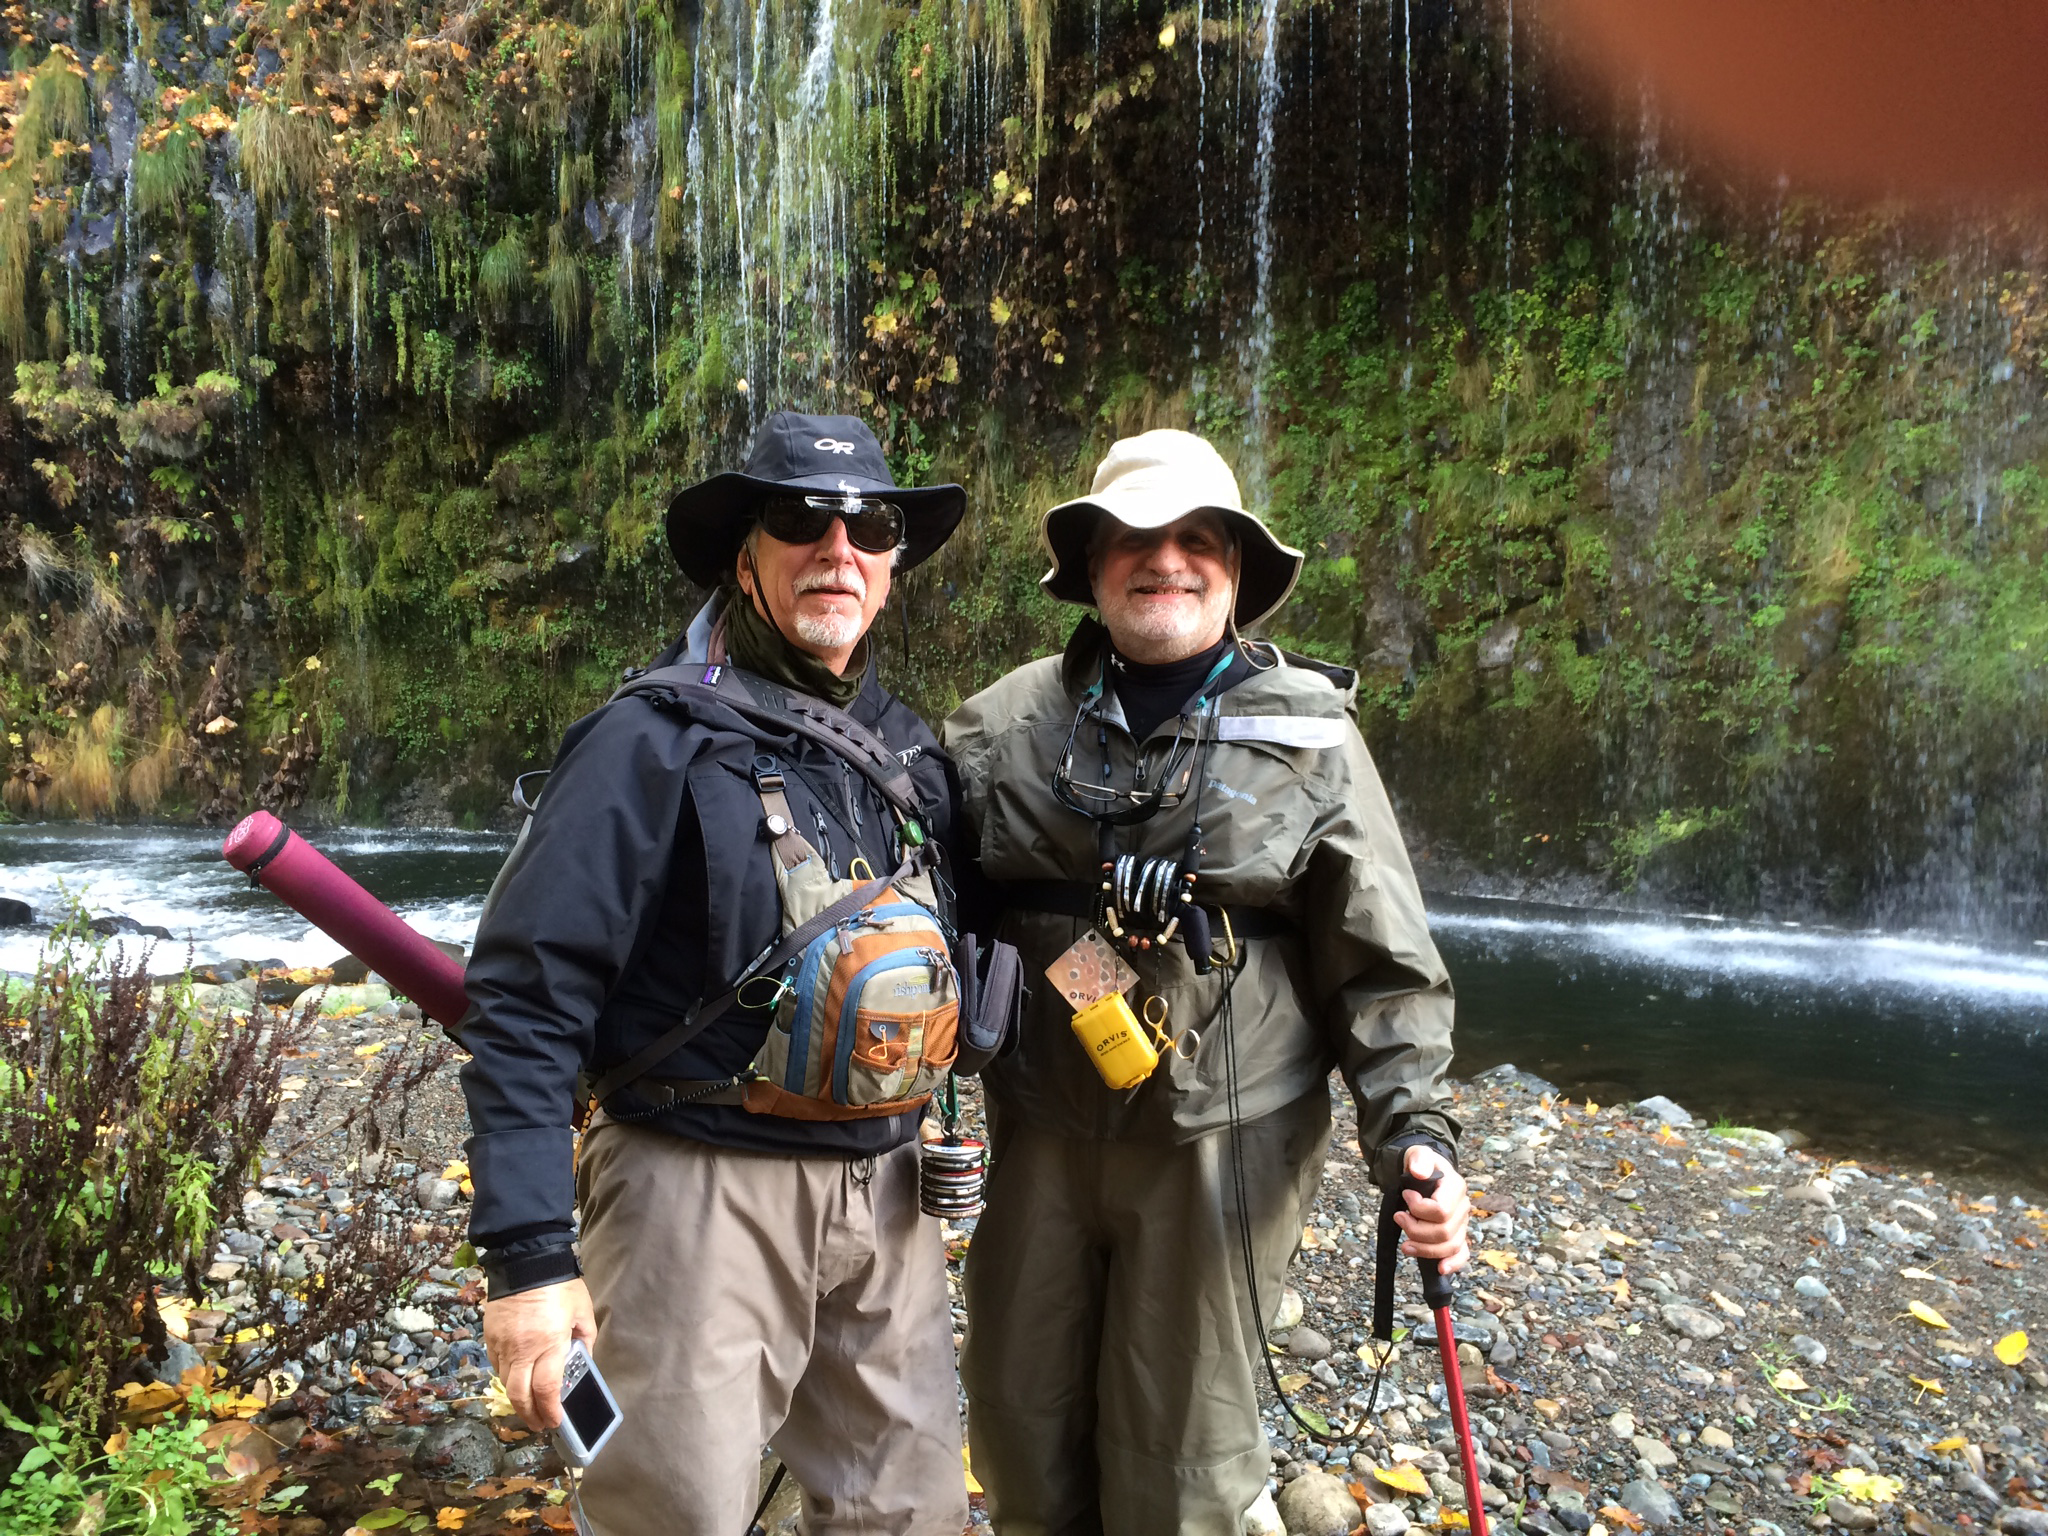 Ed Beggs and John Vlahos at Mossbrae Falls